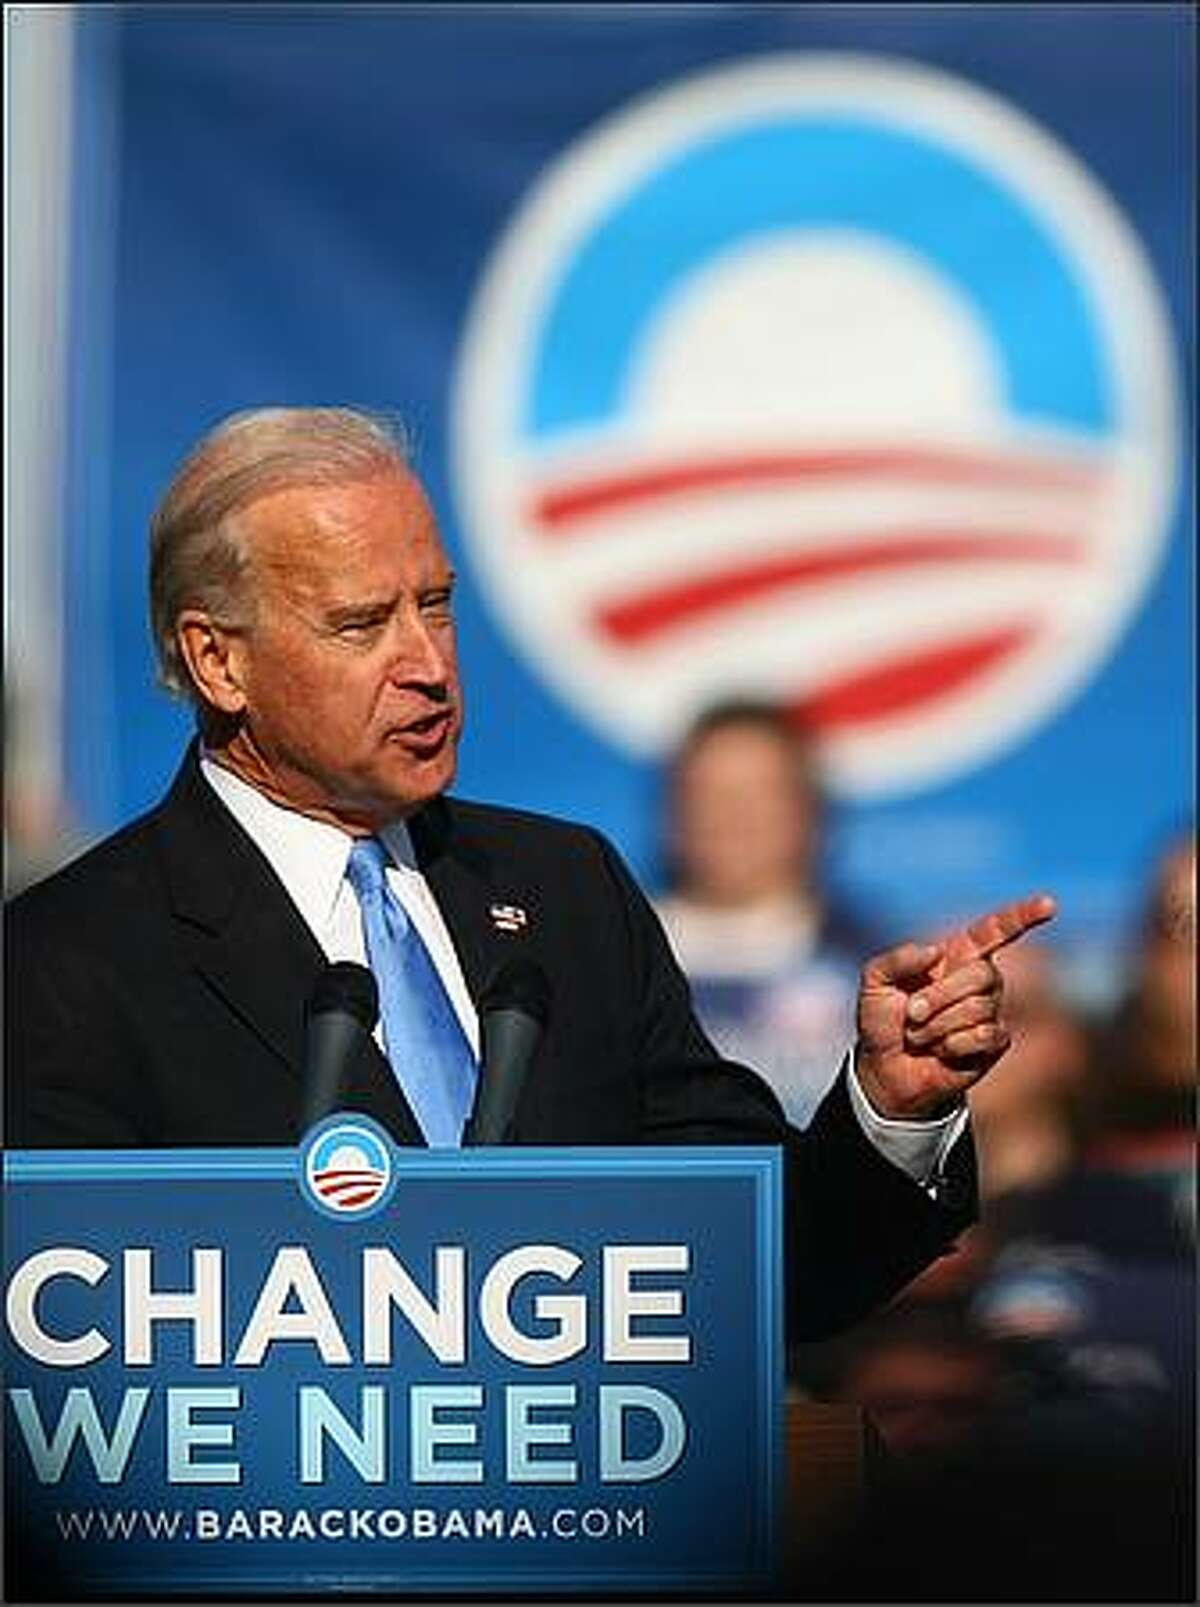 Democratic Vice Presidential candidate Joe Biden speaks to the crowd at Cheney Stadium in Tacoma.